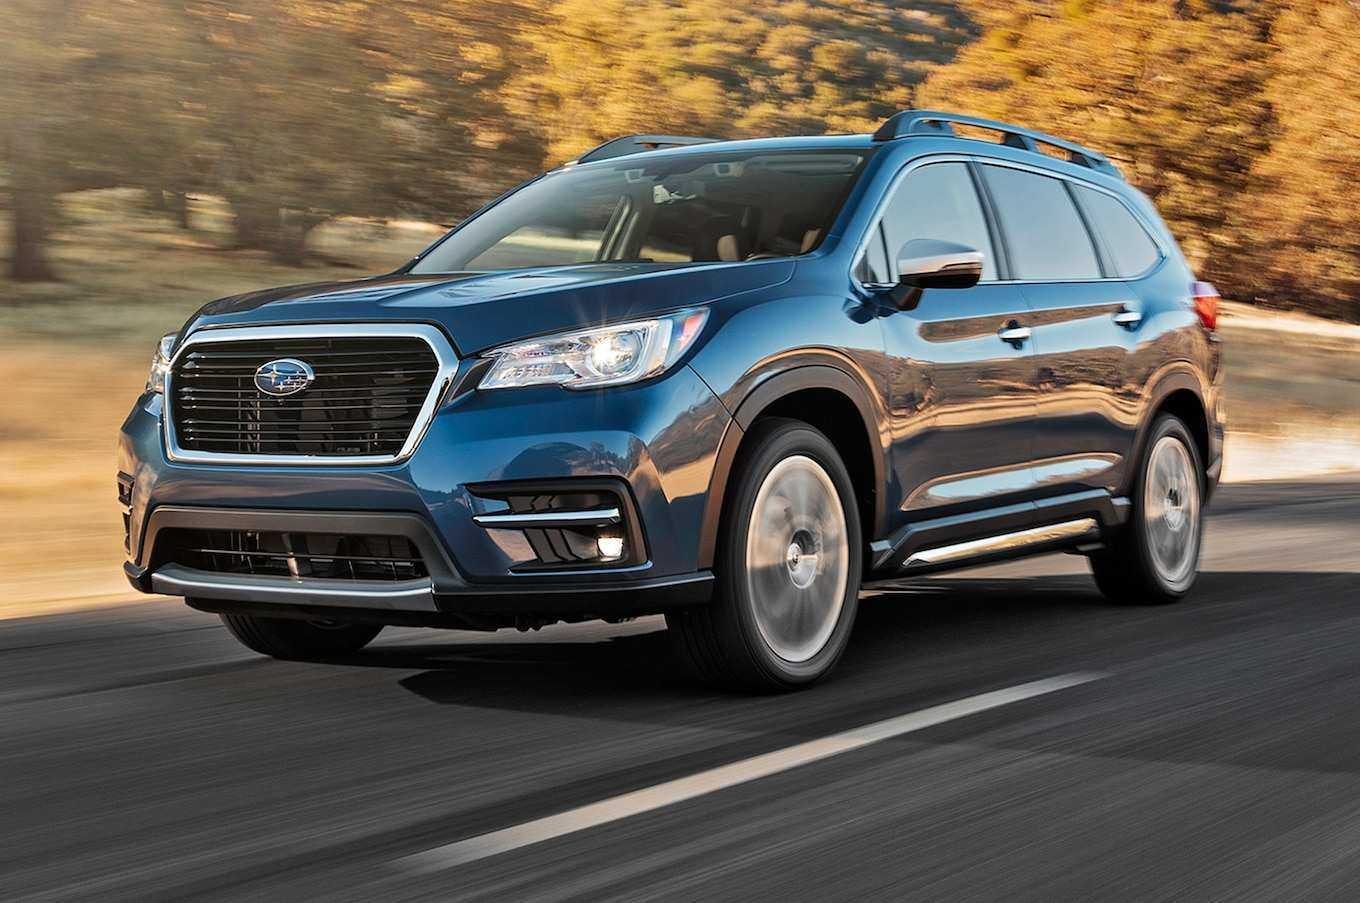 90 Gallery of Subaru 2019 Exterior Colors Review Photos by Subaru 2019 Exterior Colors Review